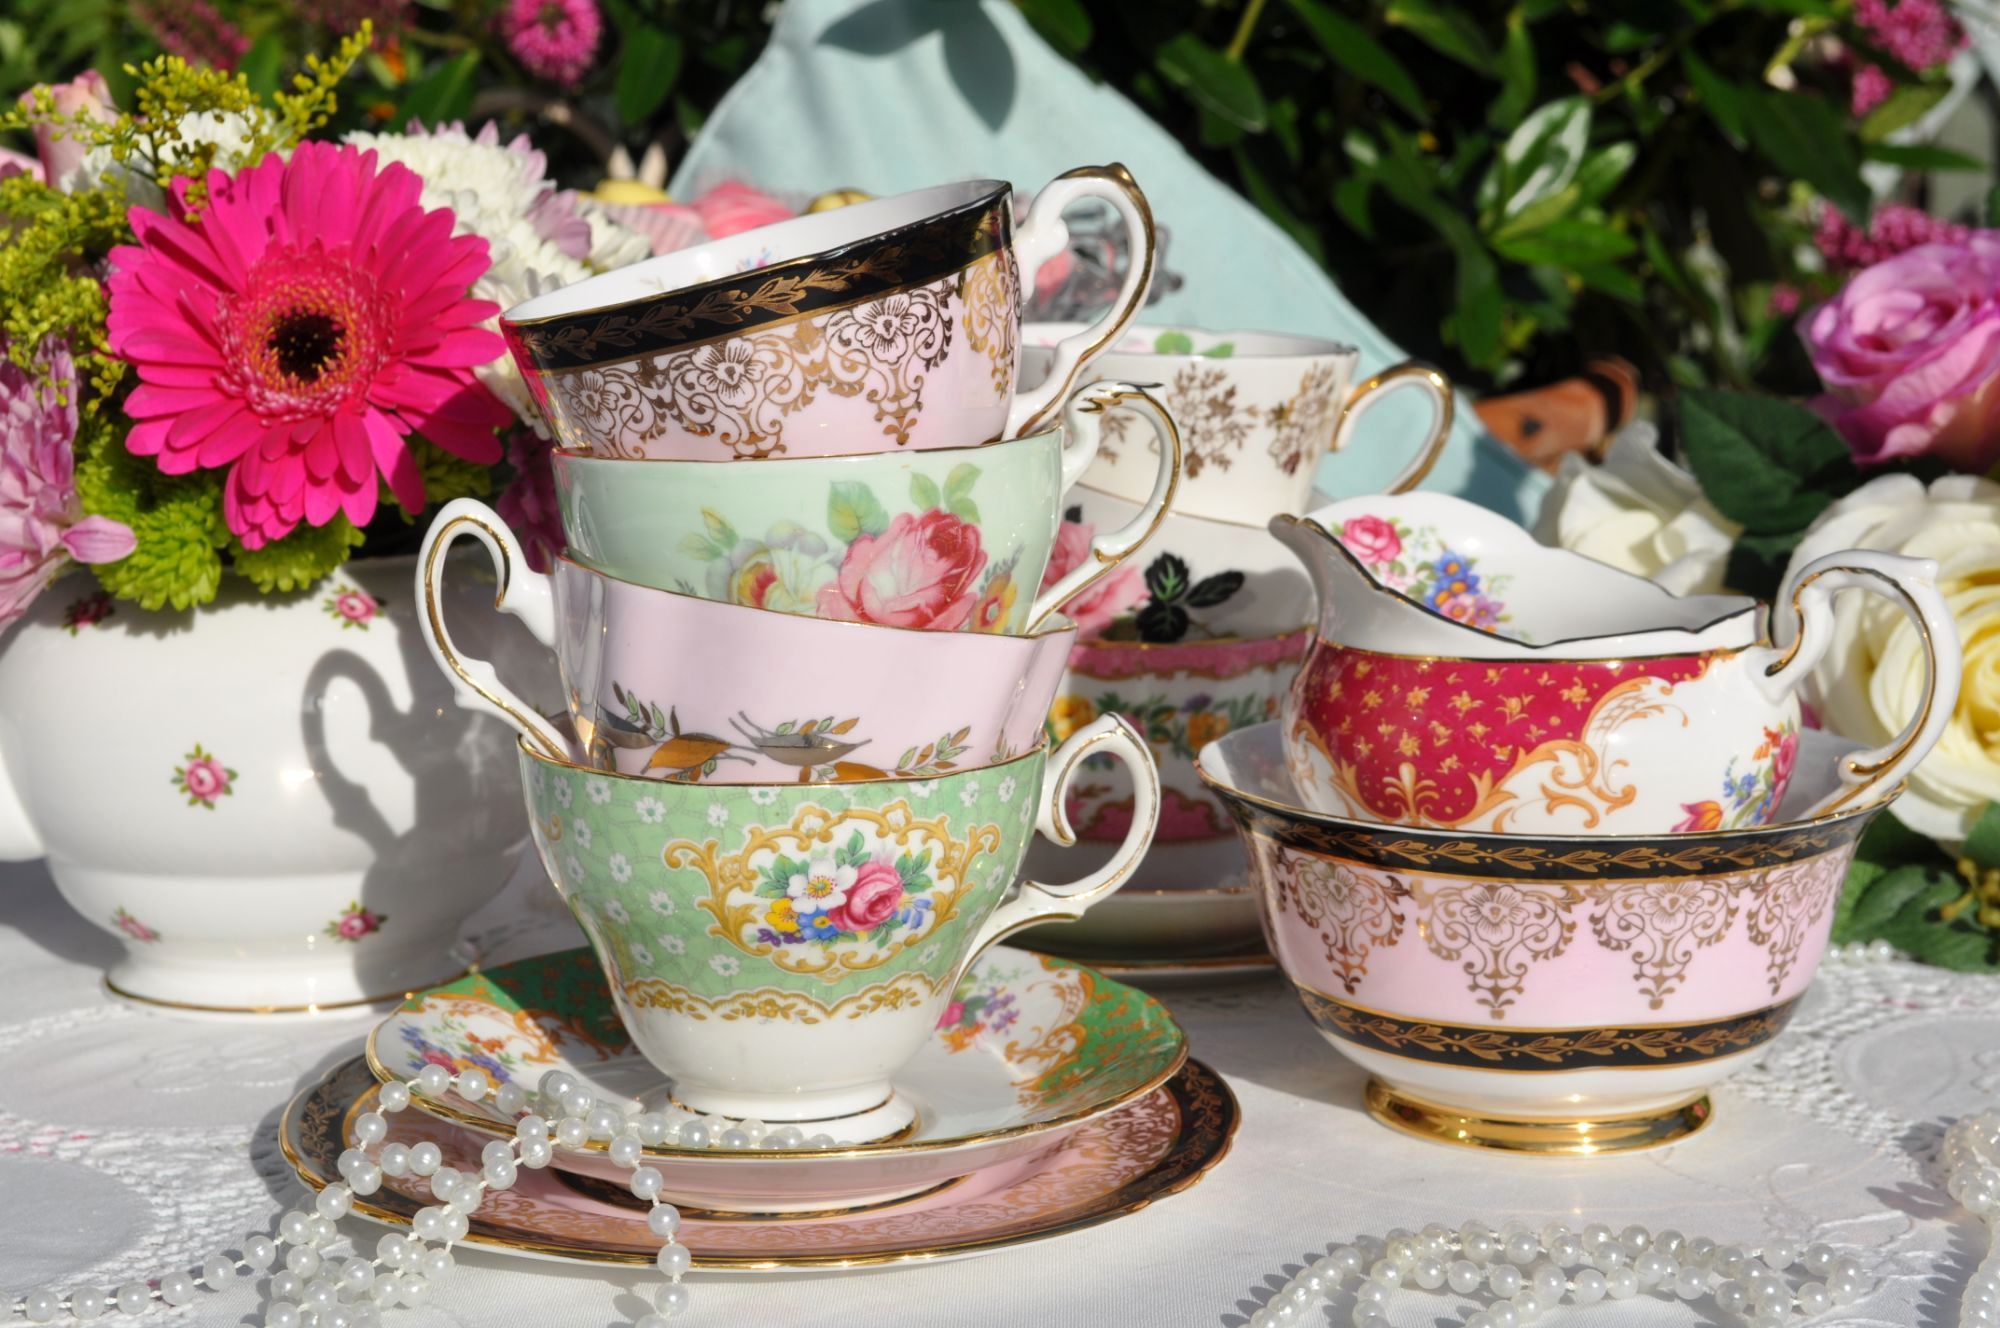 Pretty teacups and saucers